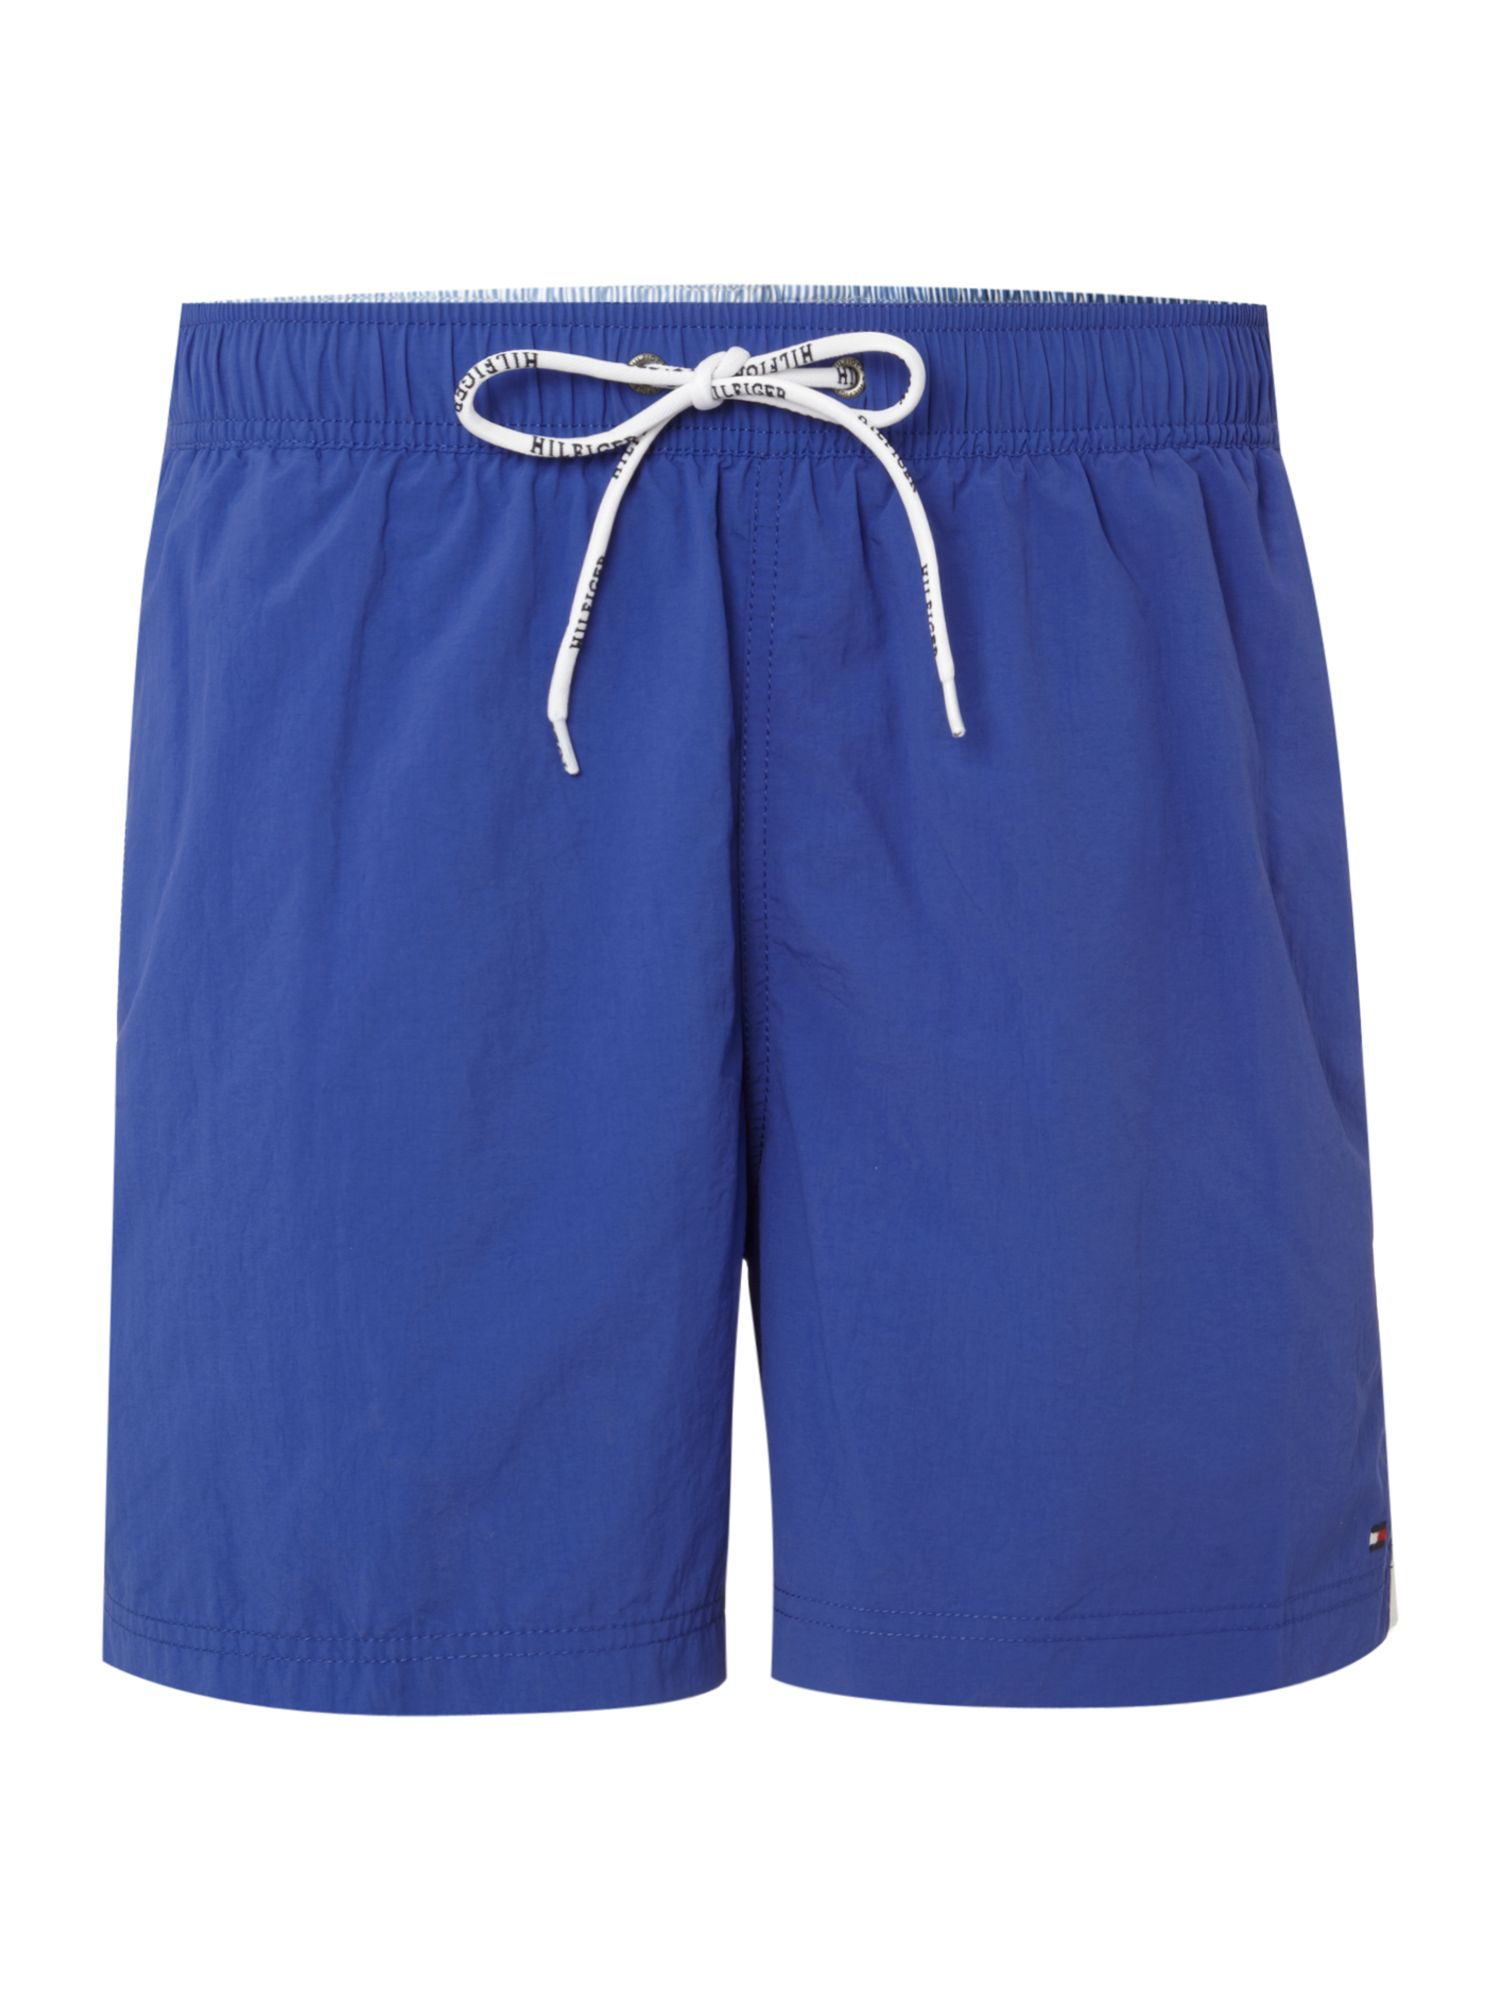 Classic swim short with side stripe